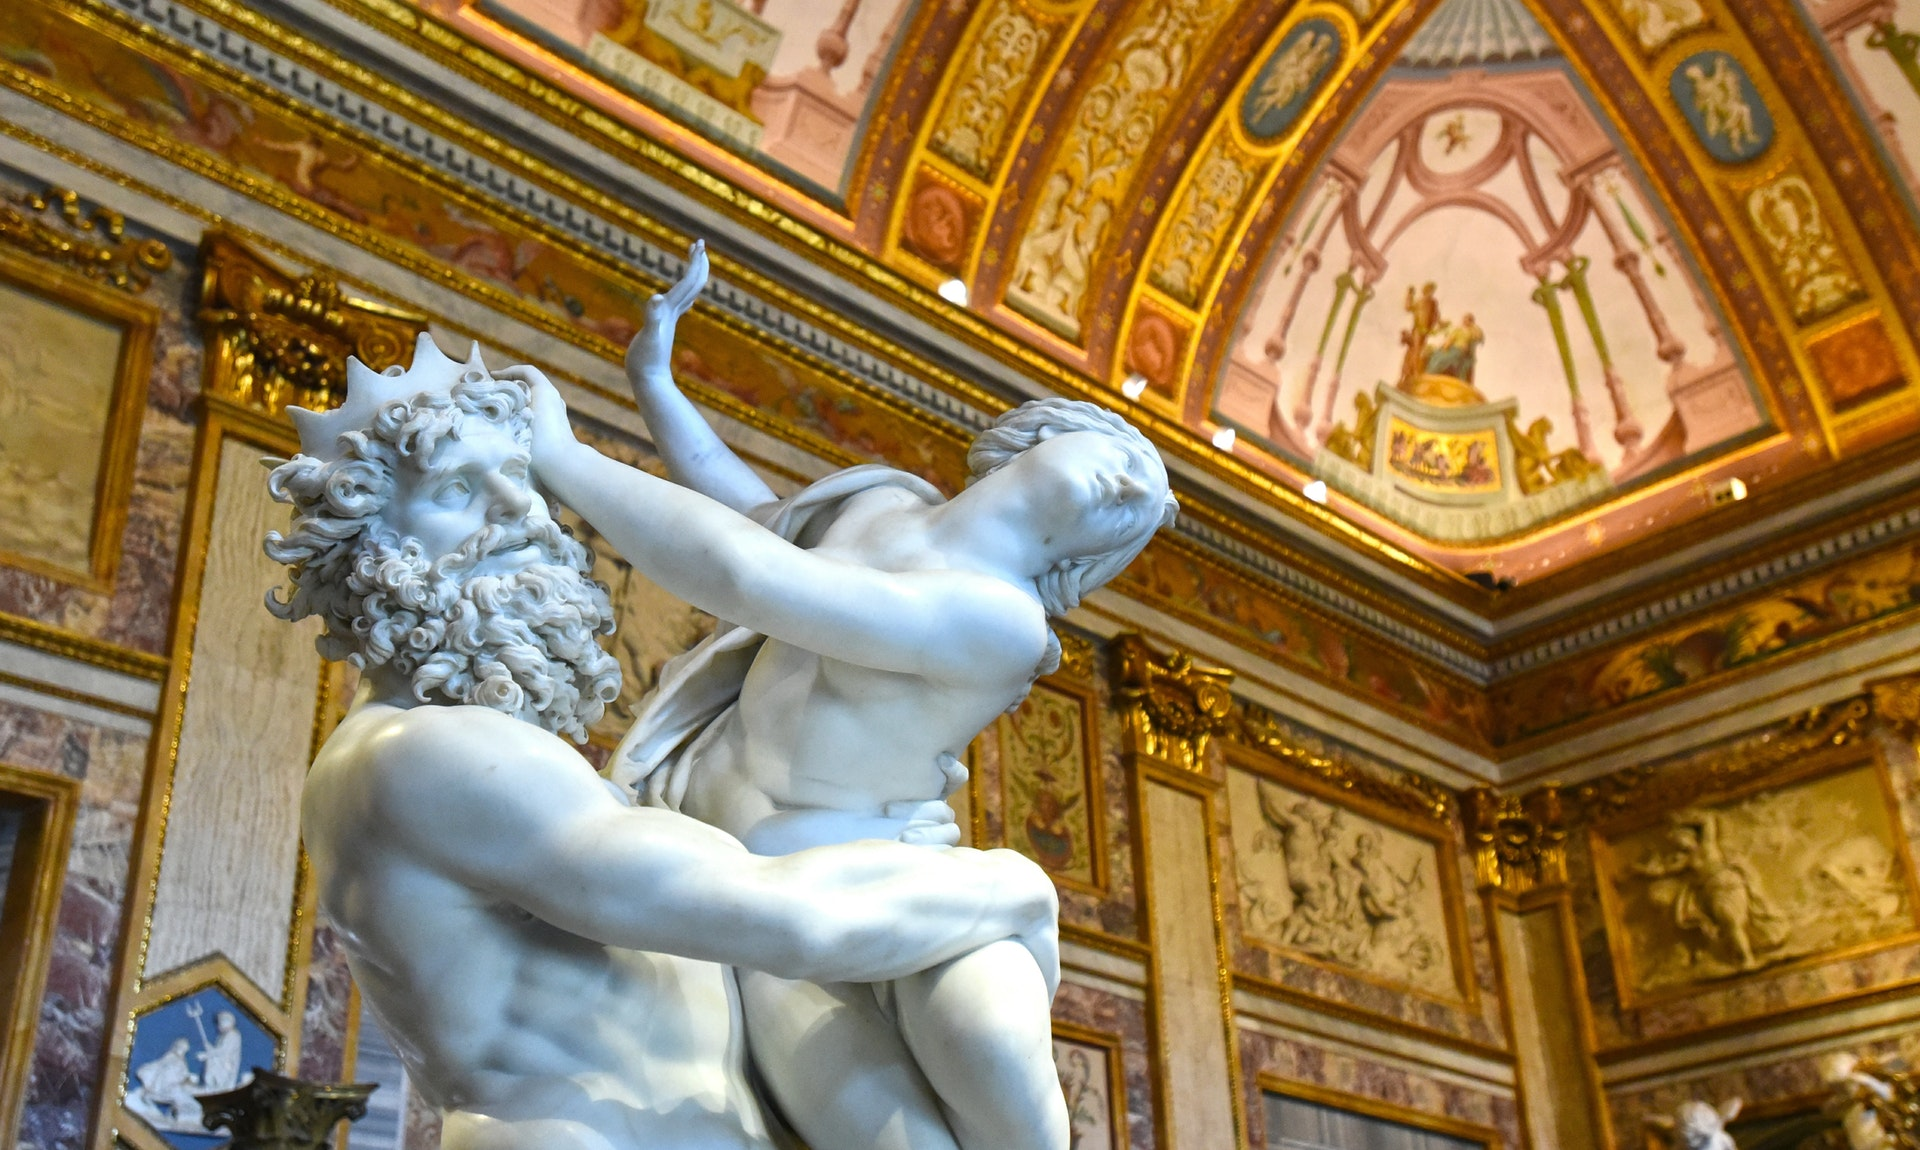 Borghese Gallary tours